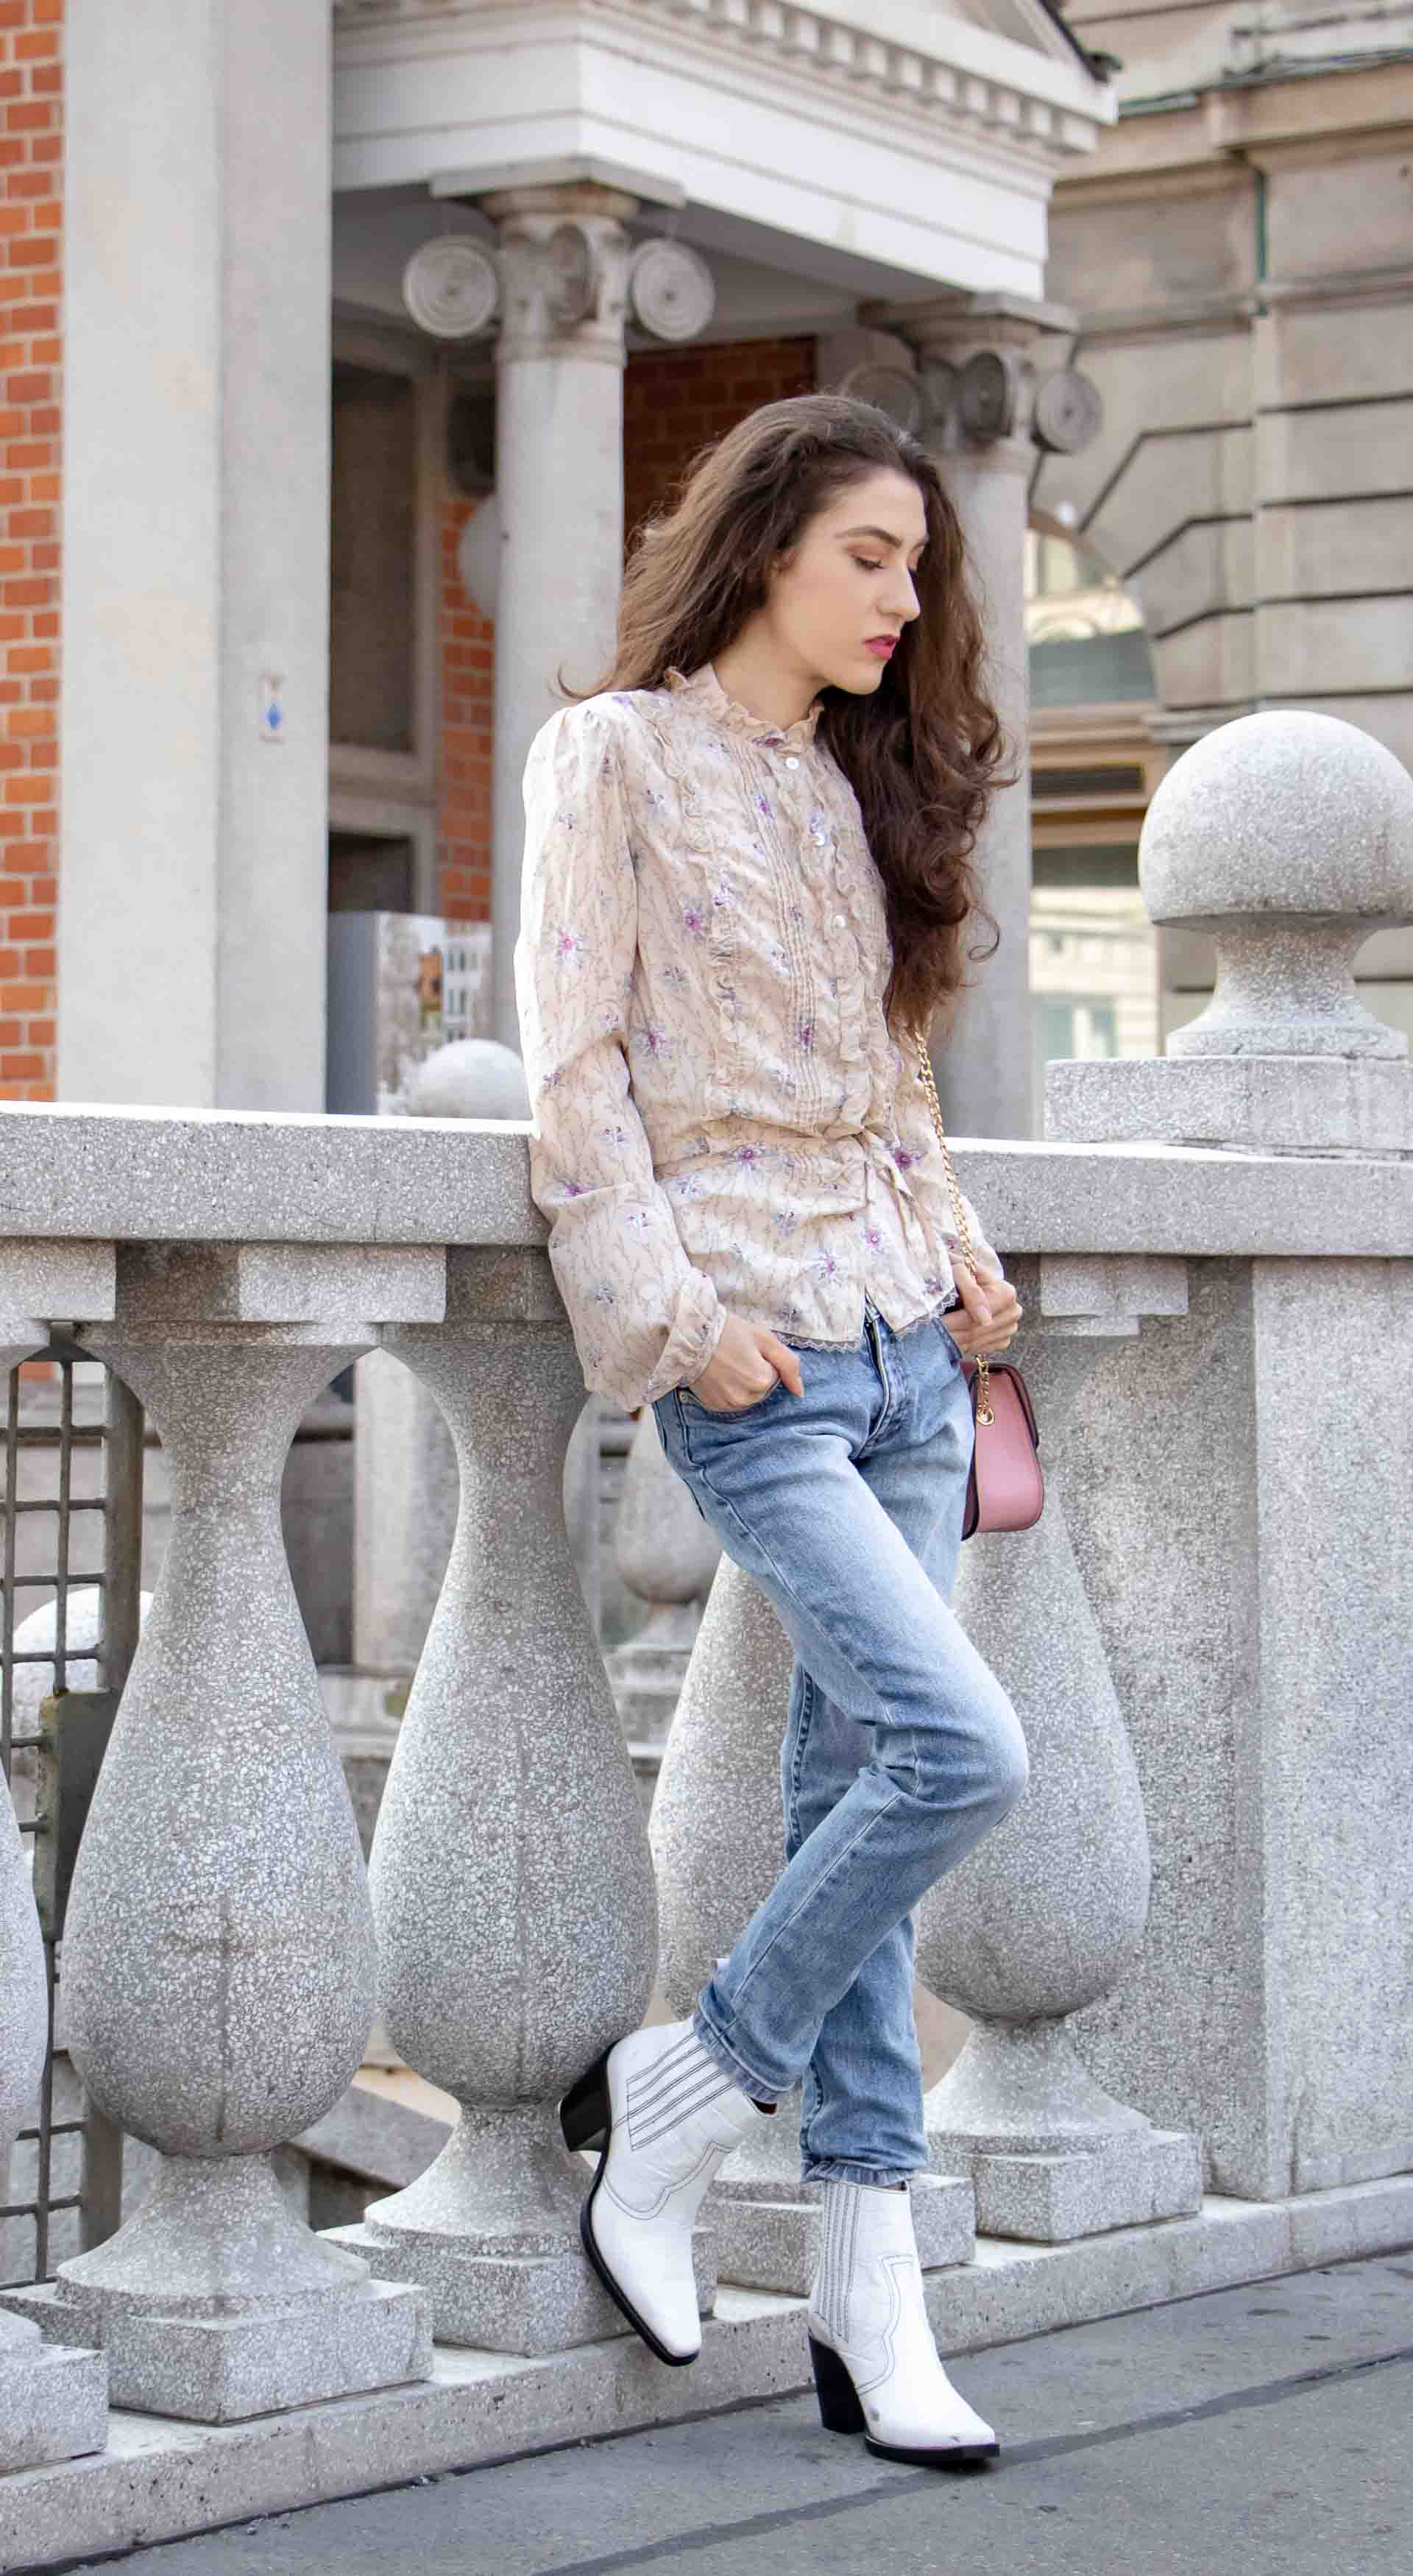 Beautiful Slovenian Fashion Blogger Veronika Lipar of Brunette from Wall dressed in white Ganni Western boots, floral long sleeved Prairie blouse, A.P.C. blue jeans on the street in fall in Ljubljana